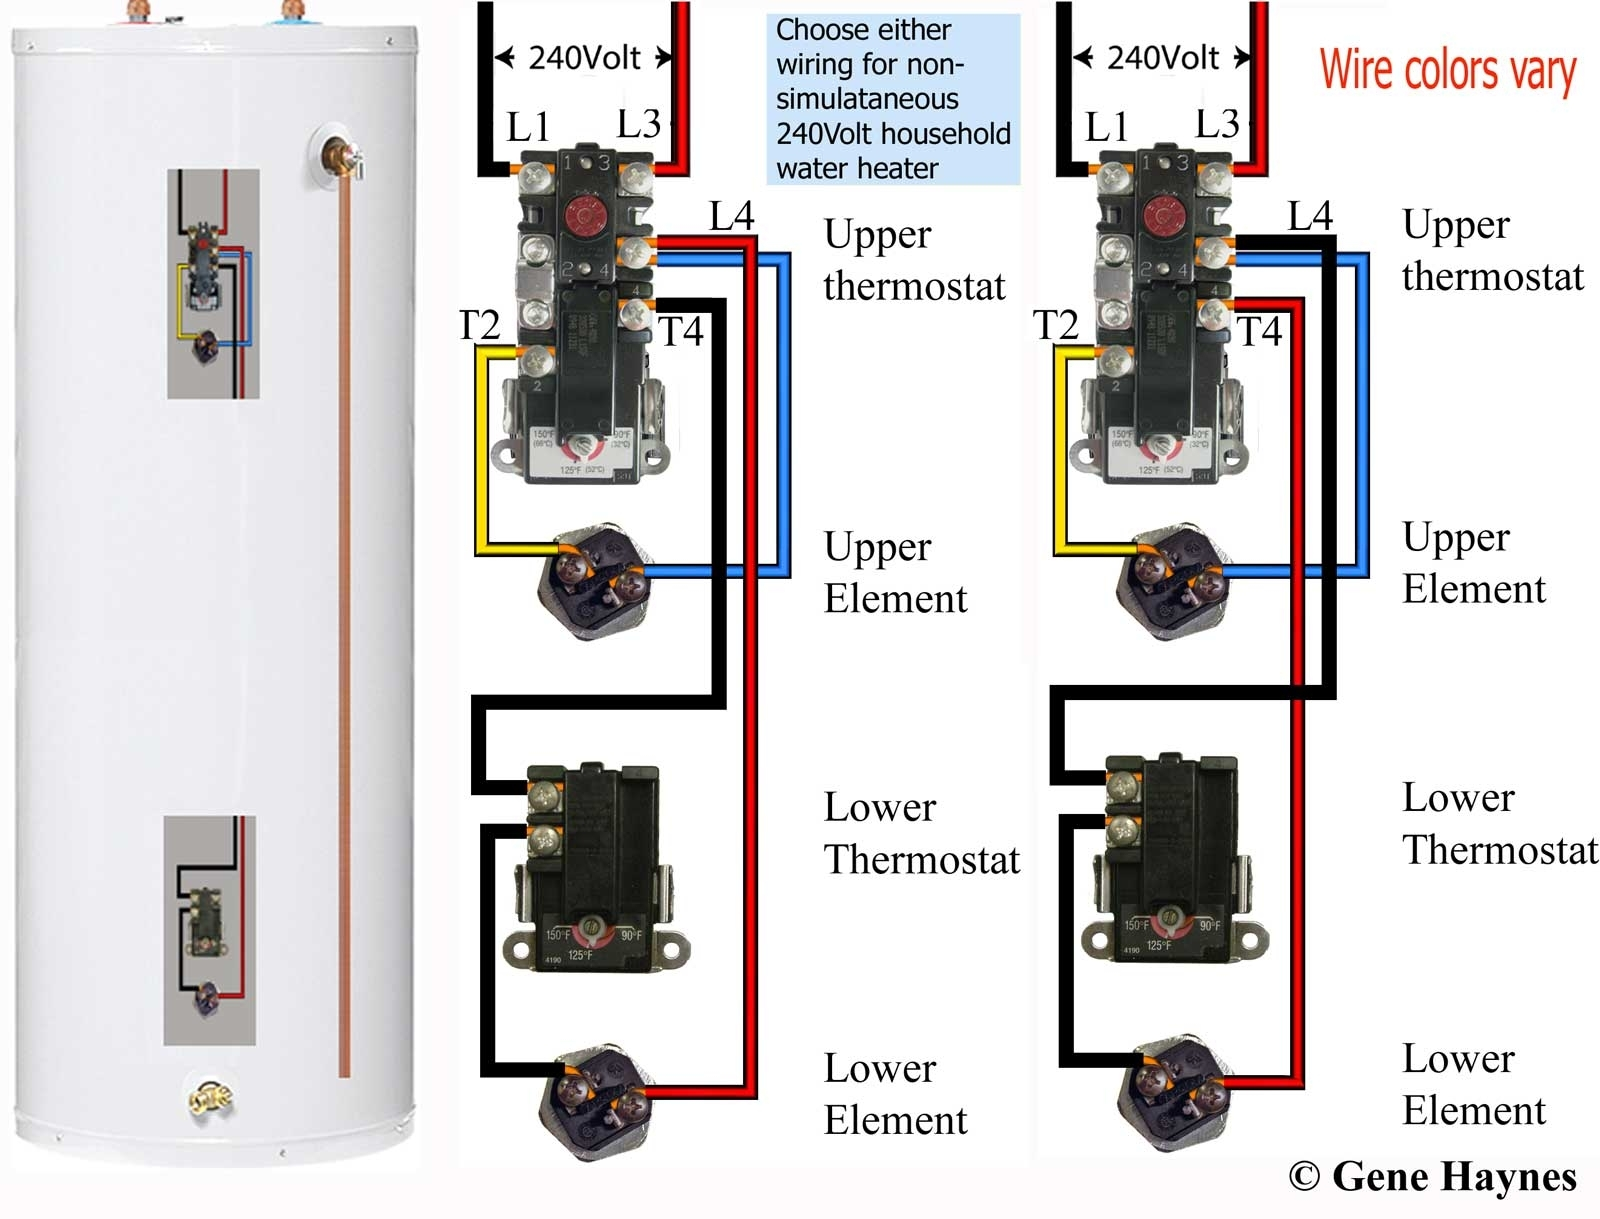 electric hot water tank wiring diagram ge electric hot water tank wiring diagram gas hot water heater parts diagram | automotive parts ...